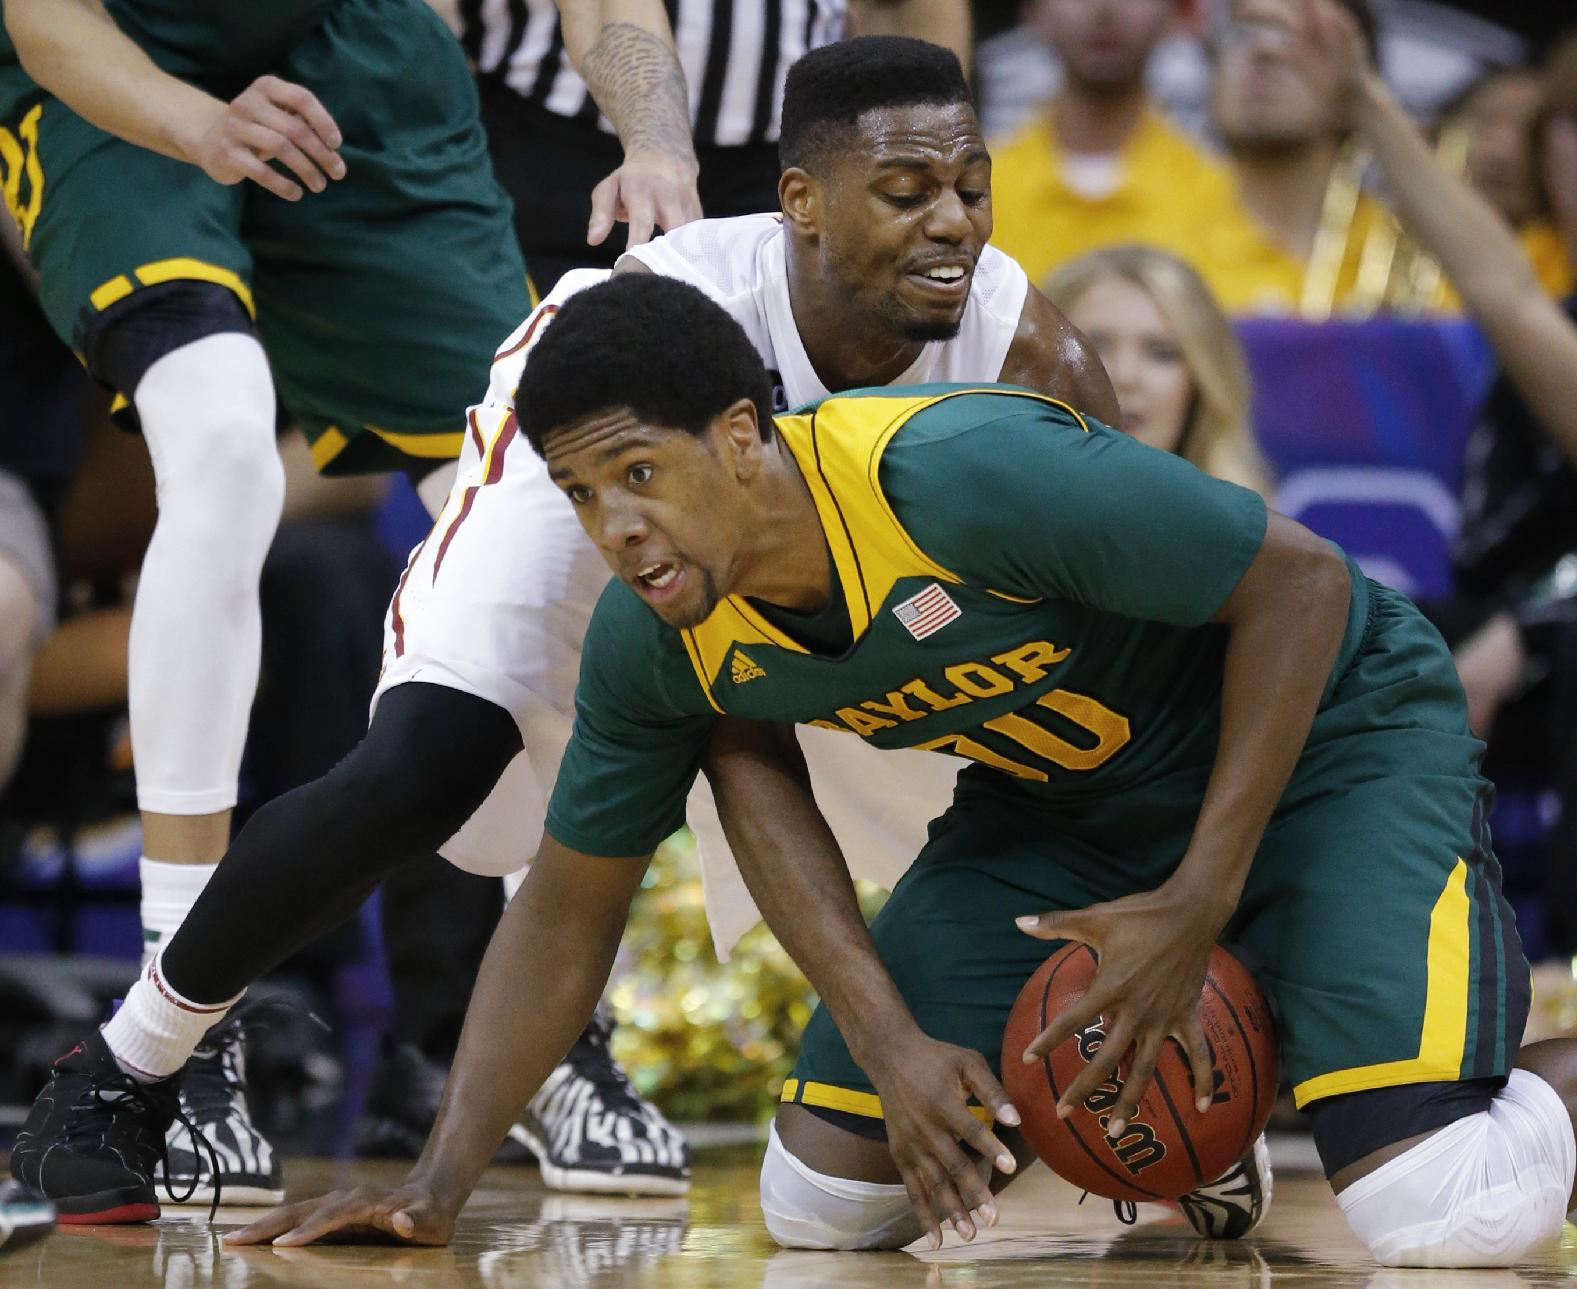 Baylor forward Royce O'Neale (00) gathers the ball while covered by Iowa State forward Melvin Ejim, back, during the first half of an NCAA college basketball game in the final of the Big 12 Conference men's tournament in Kansas City, Mo., Saturday, March 15, 2014